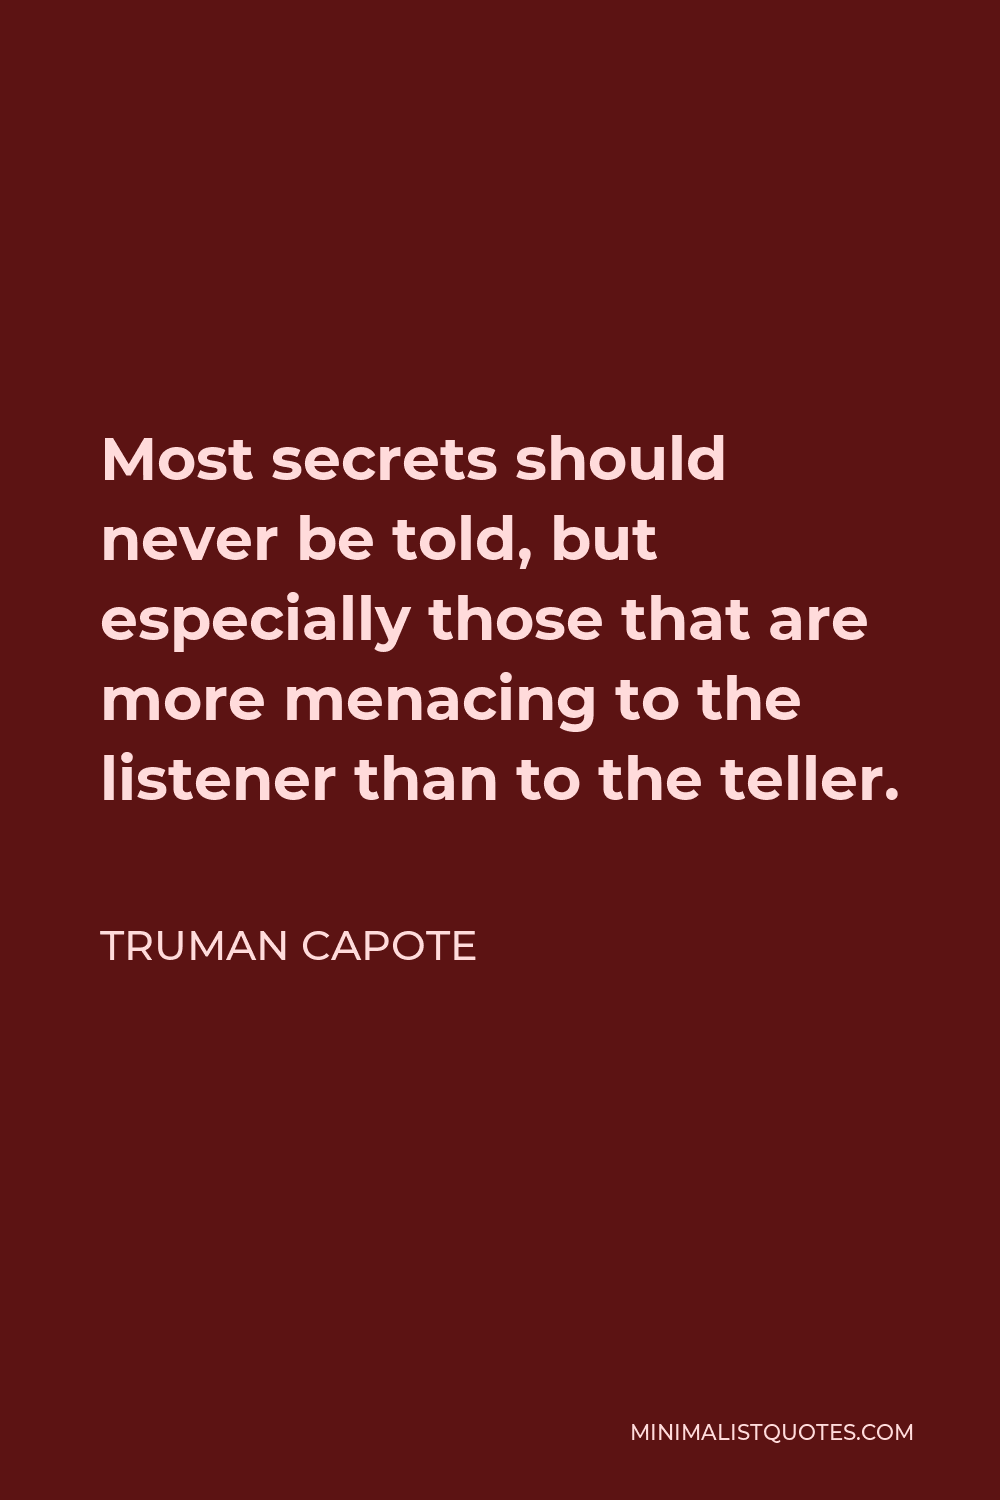 Truman Capote Quote - Most secrets should never be told, but especially those that are more menacing to the listener than to the teller.